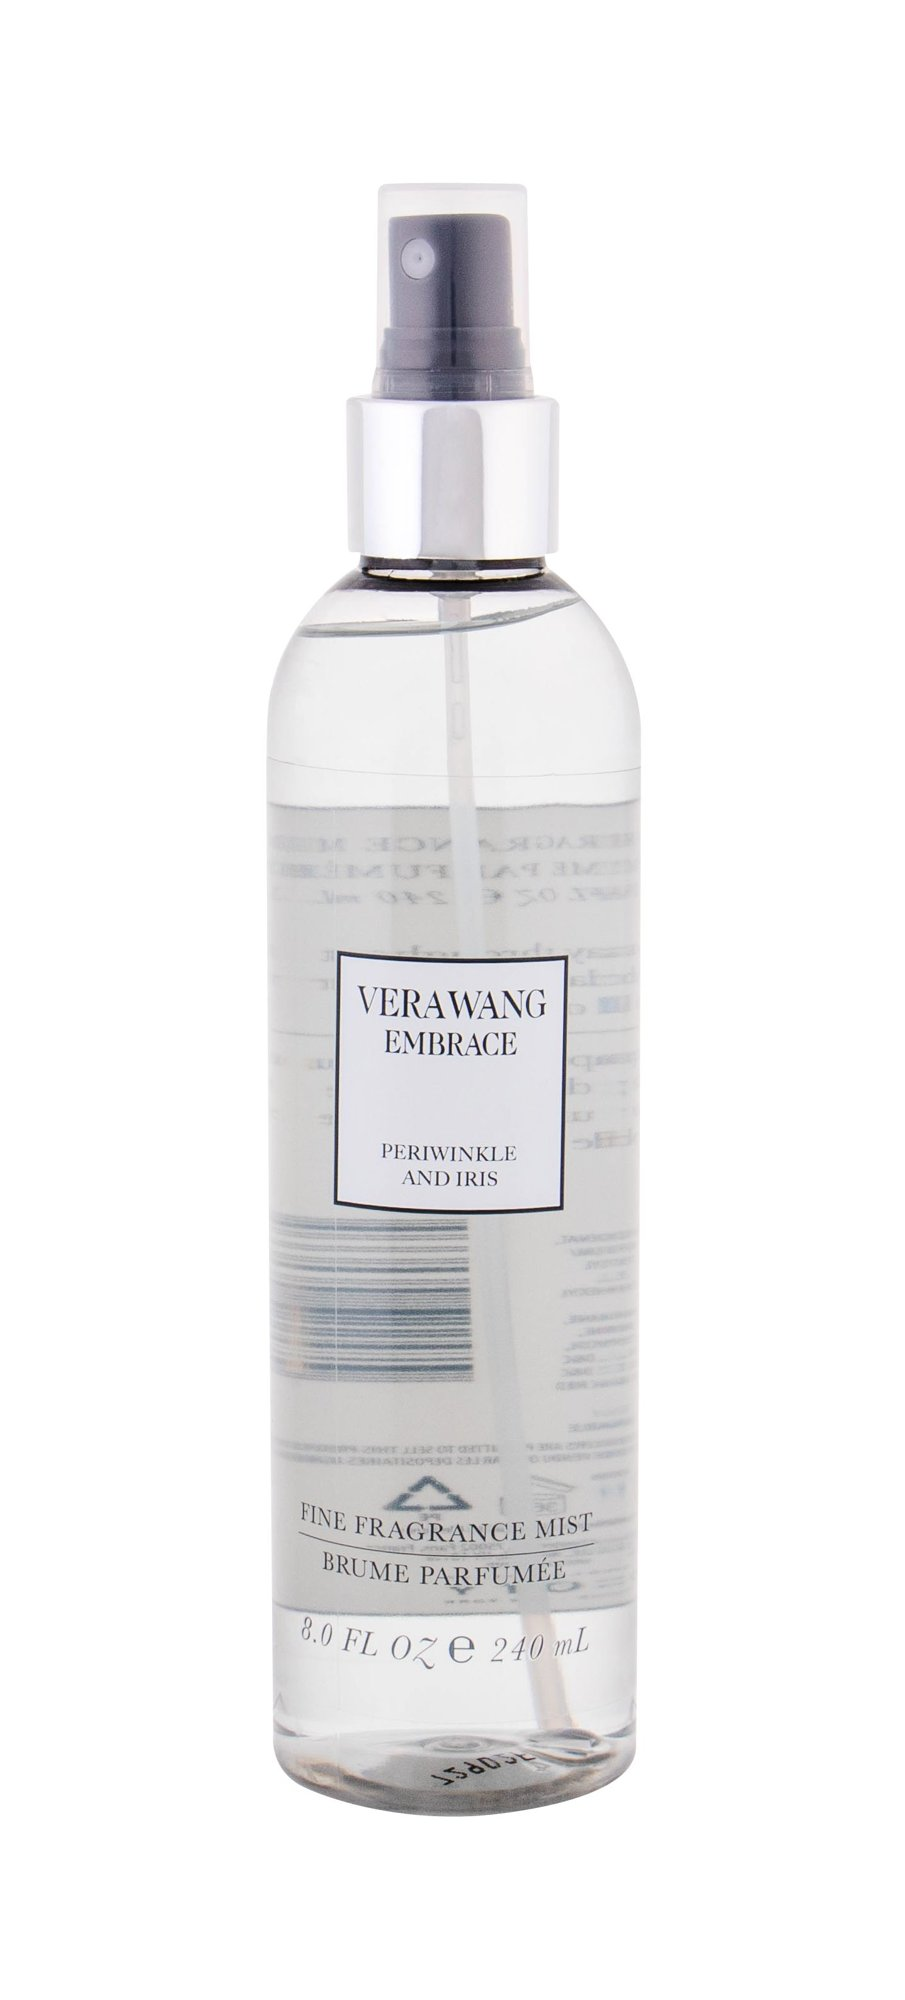 Vera Wang Embrace Body Veil 240ml